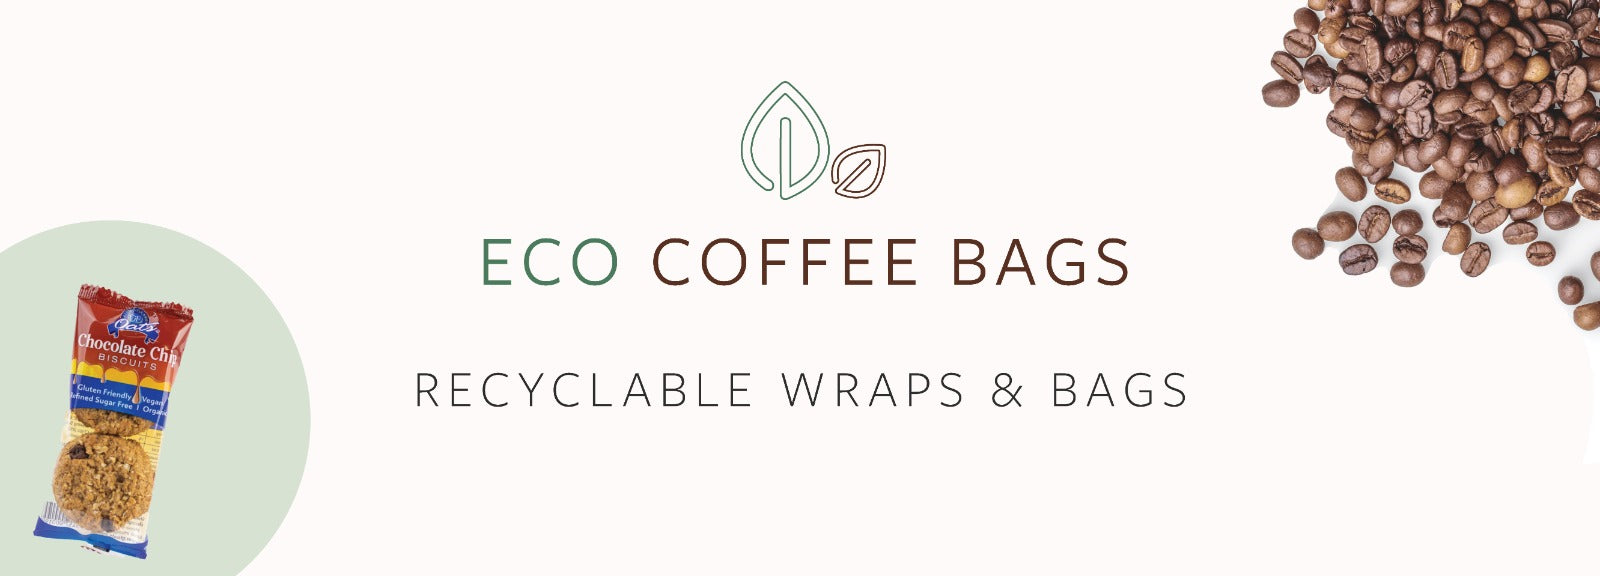 Recyclable Wraps and Bags